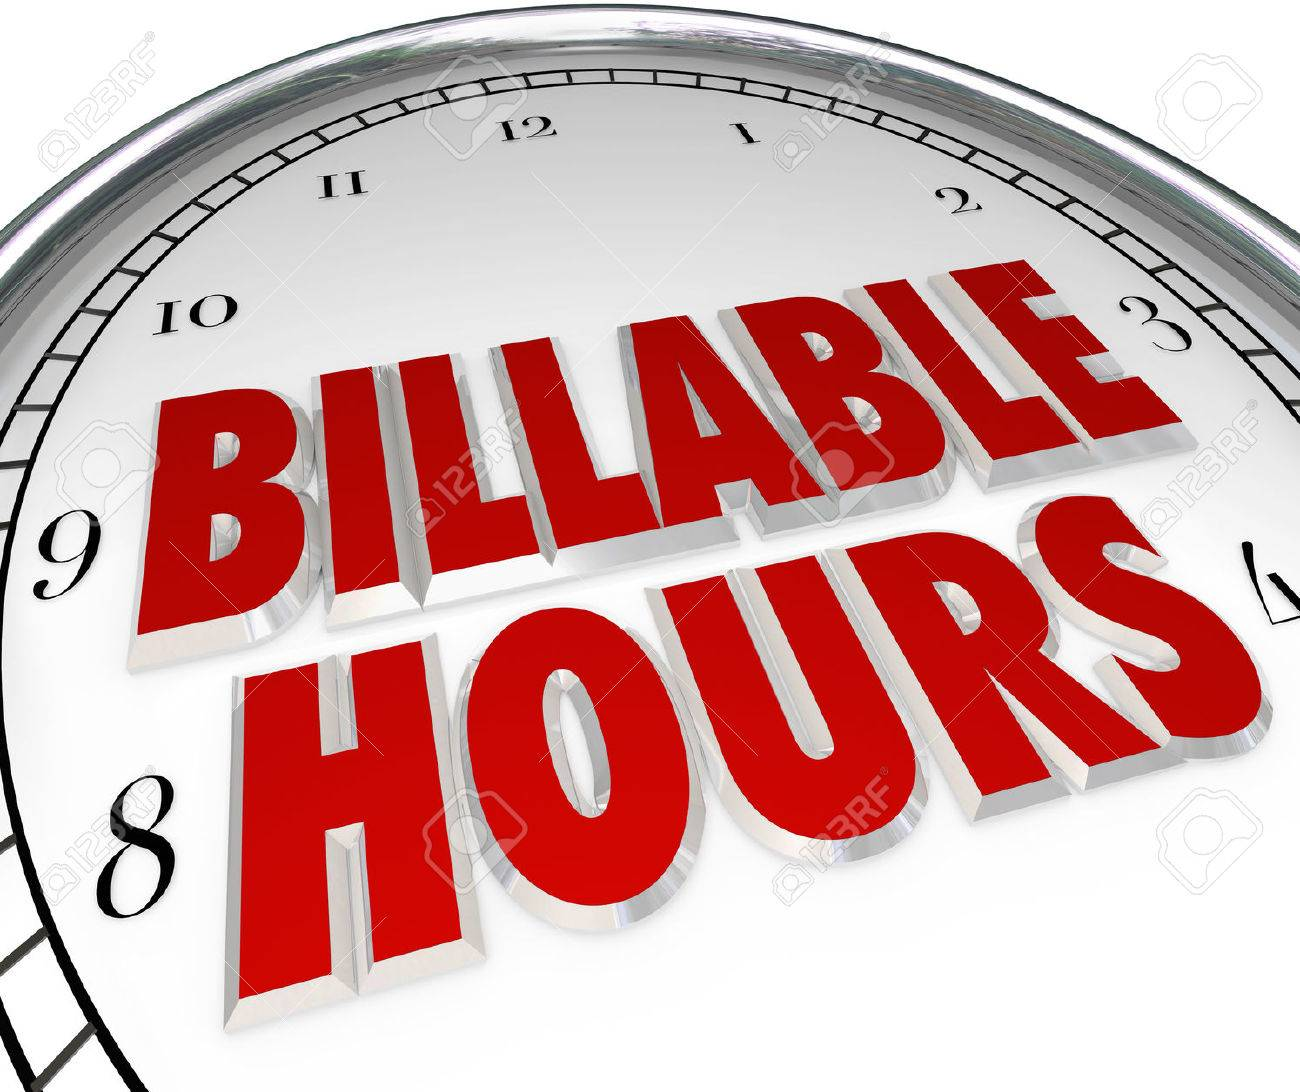 billable hours words on clock face to illustrate time keeping